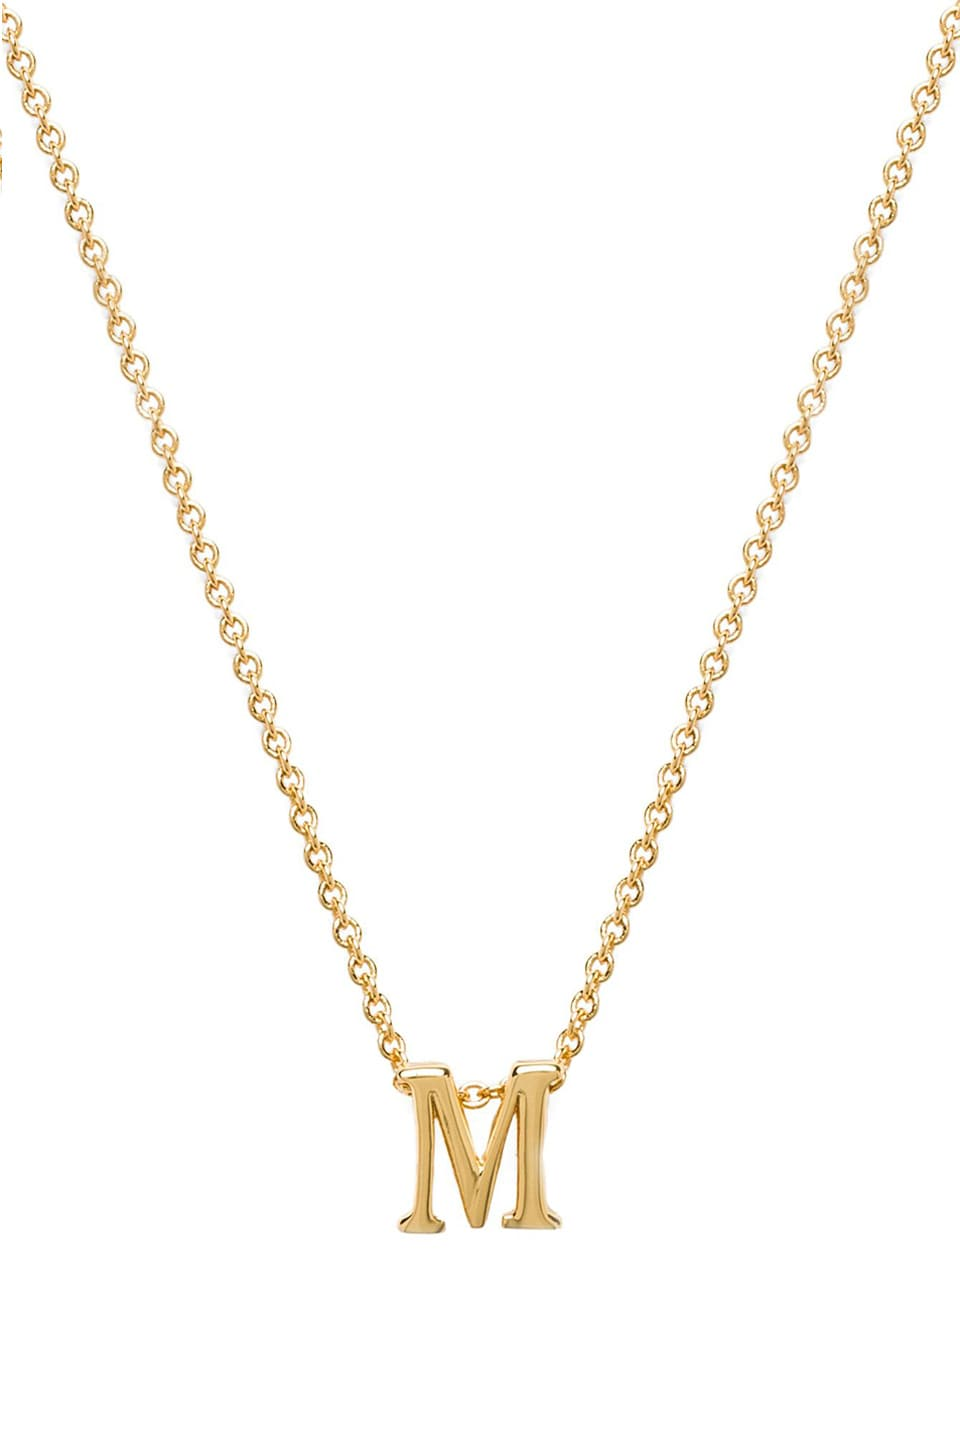 gorjana Alphabet Initial Necklace in